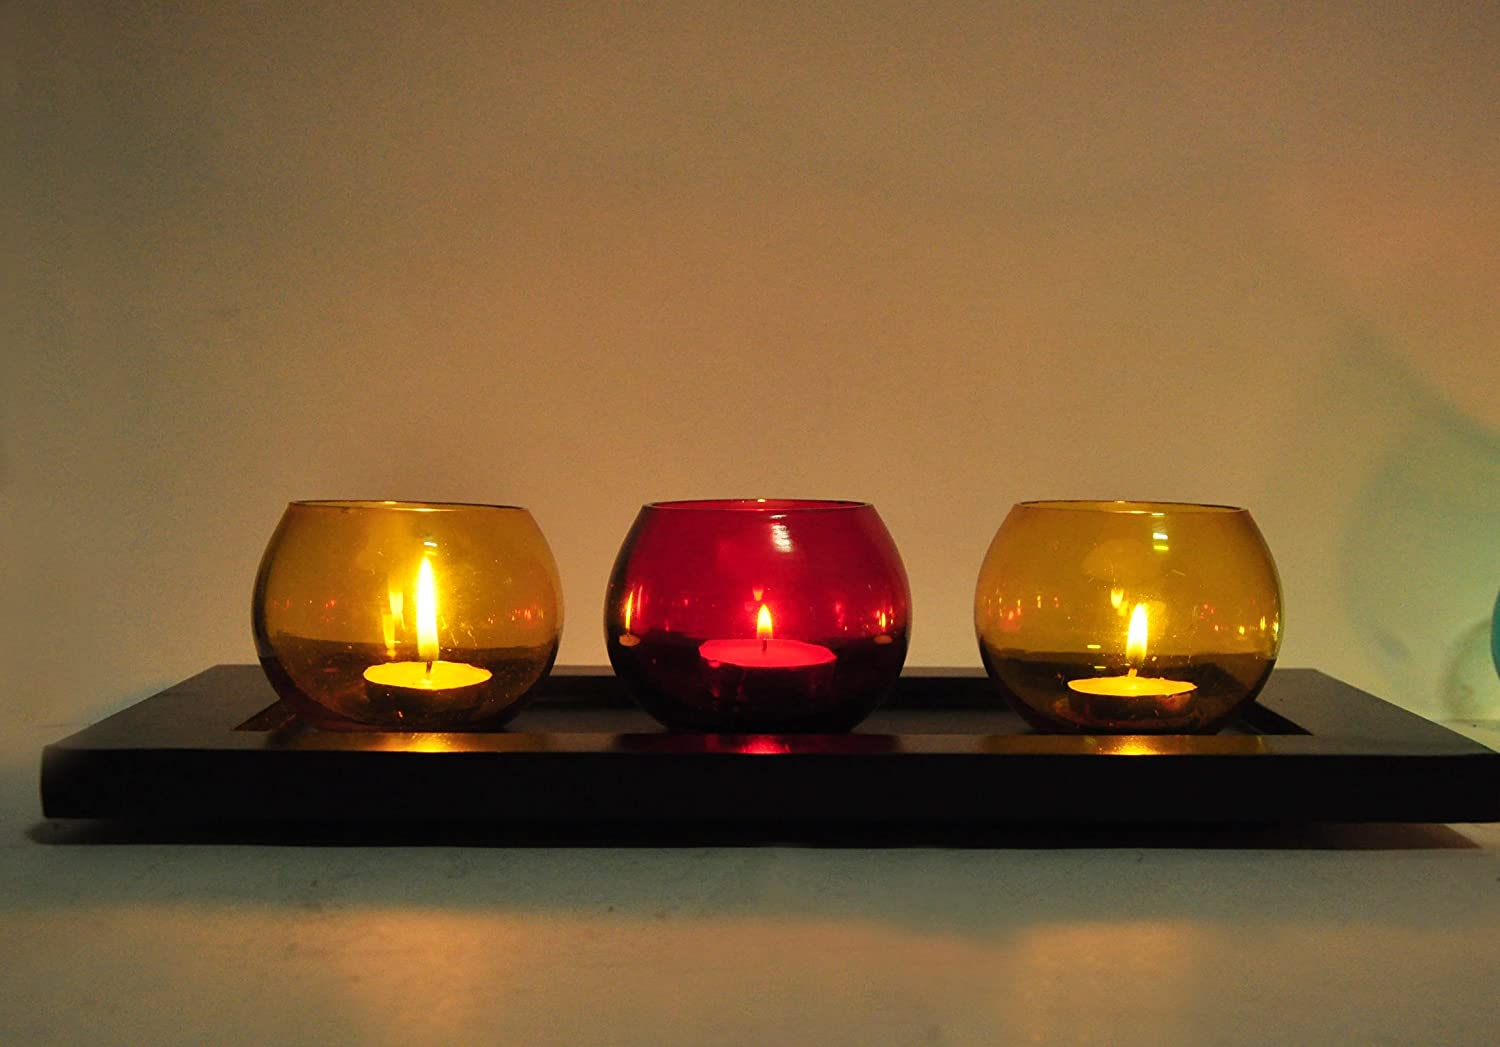 TiedRibbons Tealight Glass Holder Set of 3 (Multicolor, Glass) with Wooden Tray and T Light Candle for Diwali Decorations